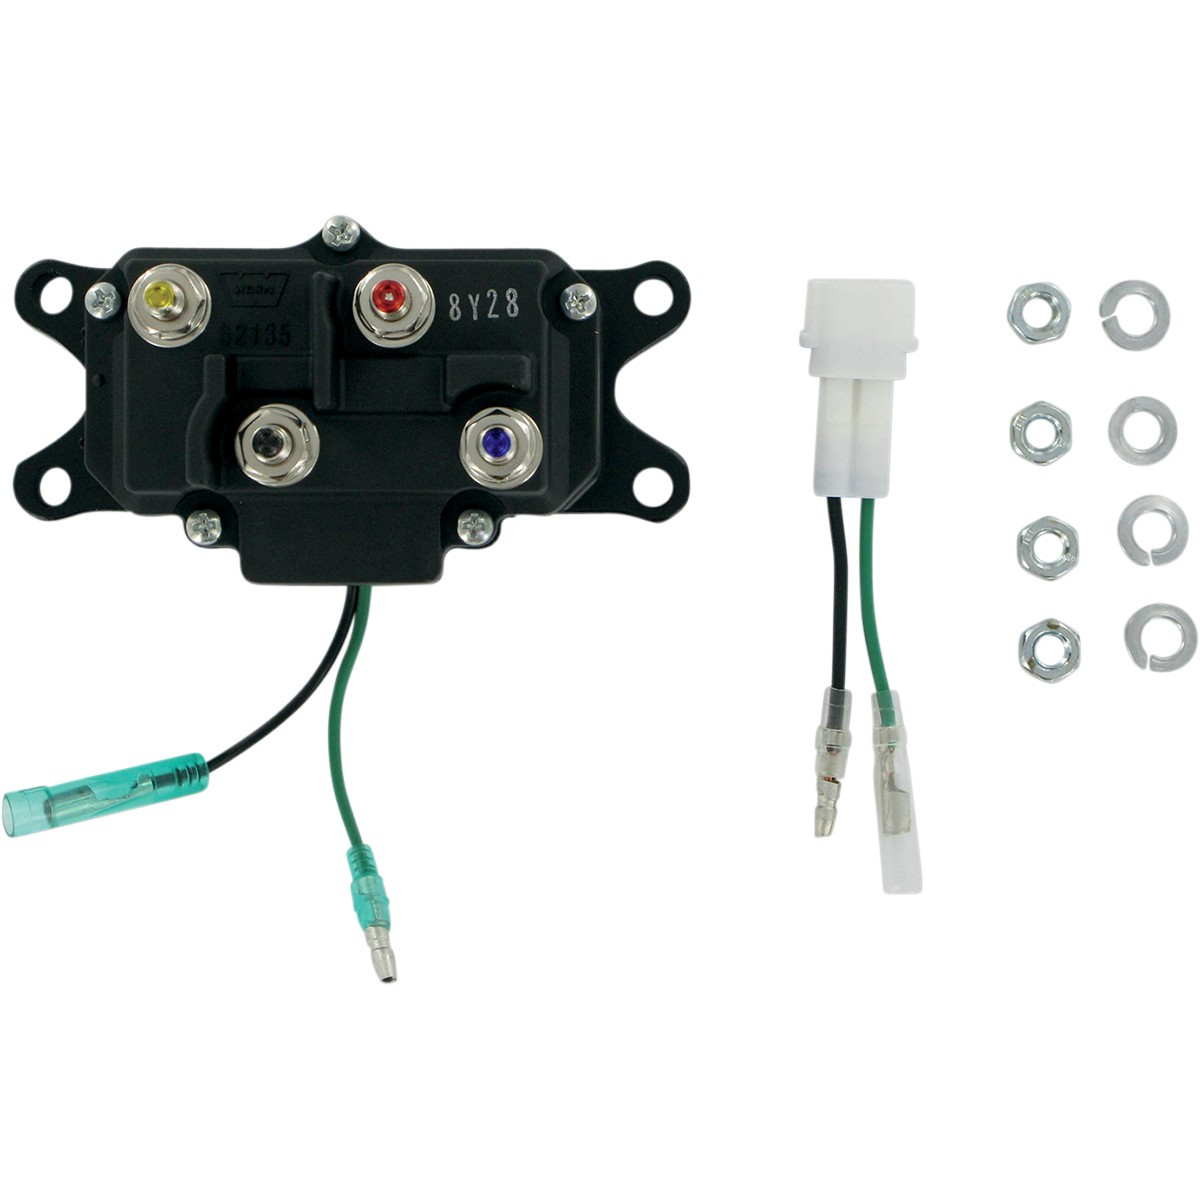 Replacement Contactor - Polaris ATV (2875714/70715)